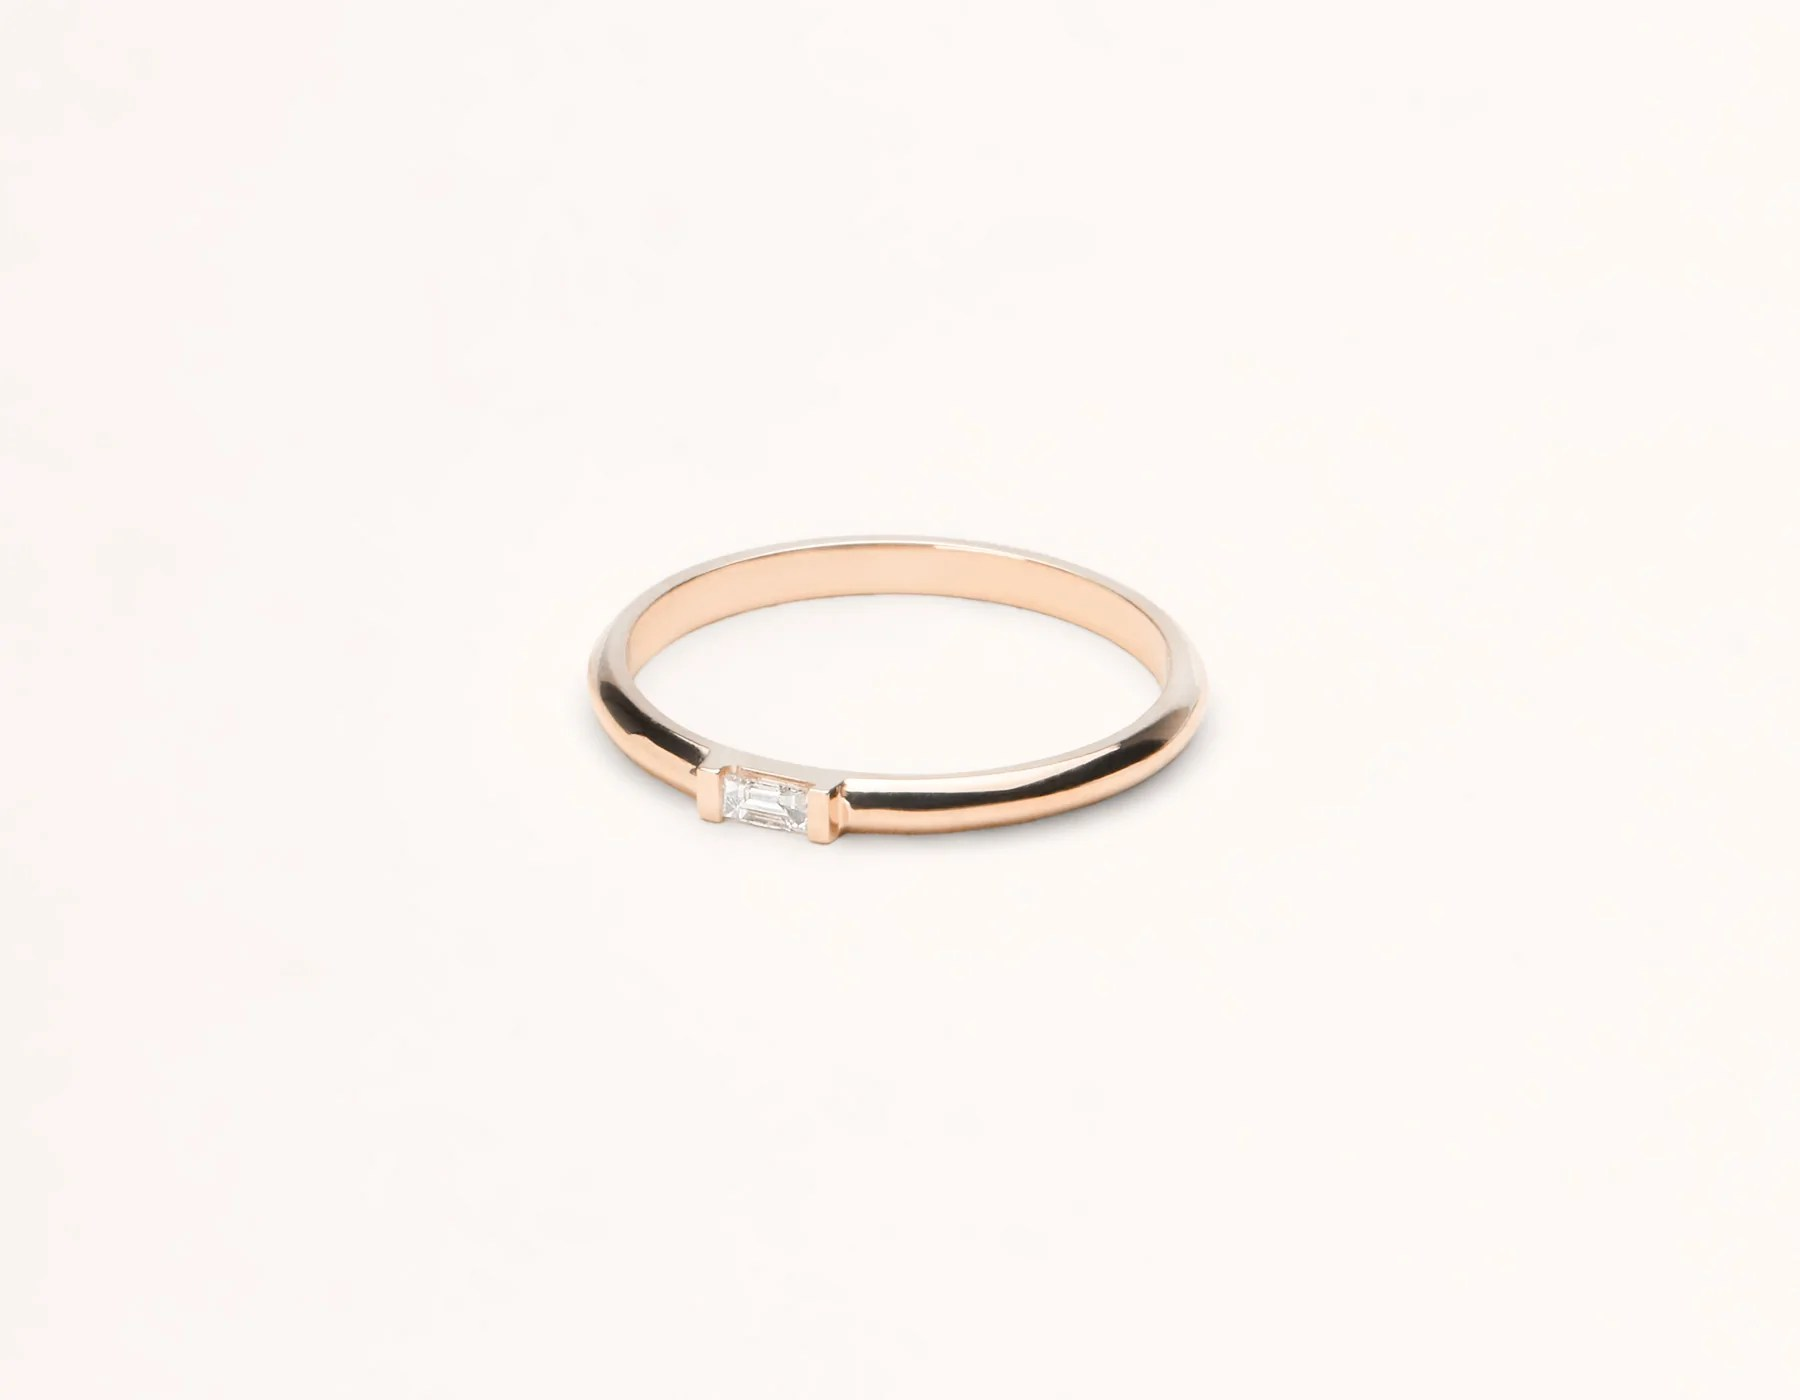 Baguette Diamond Ring 14k Solid Gold Vrai Amp Oro